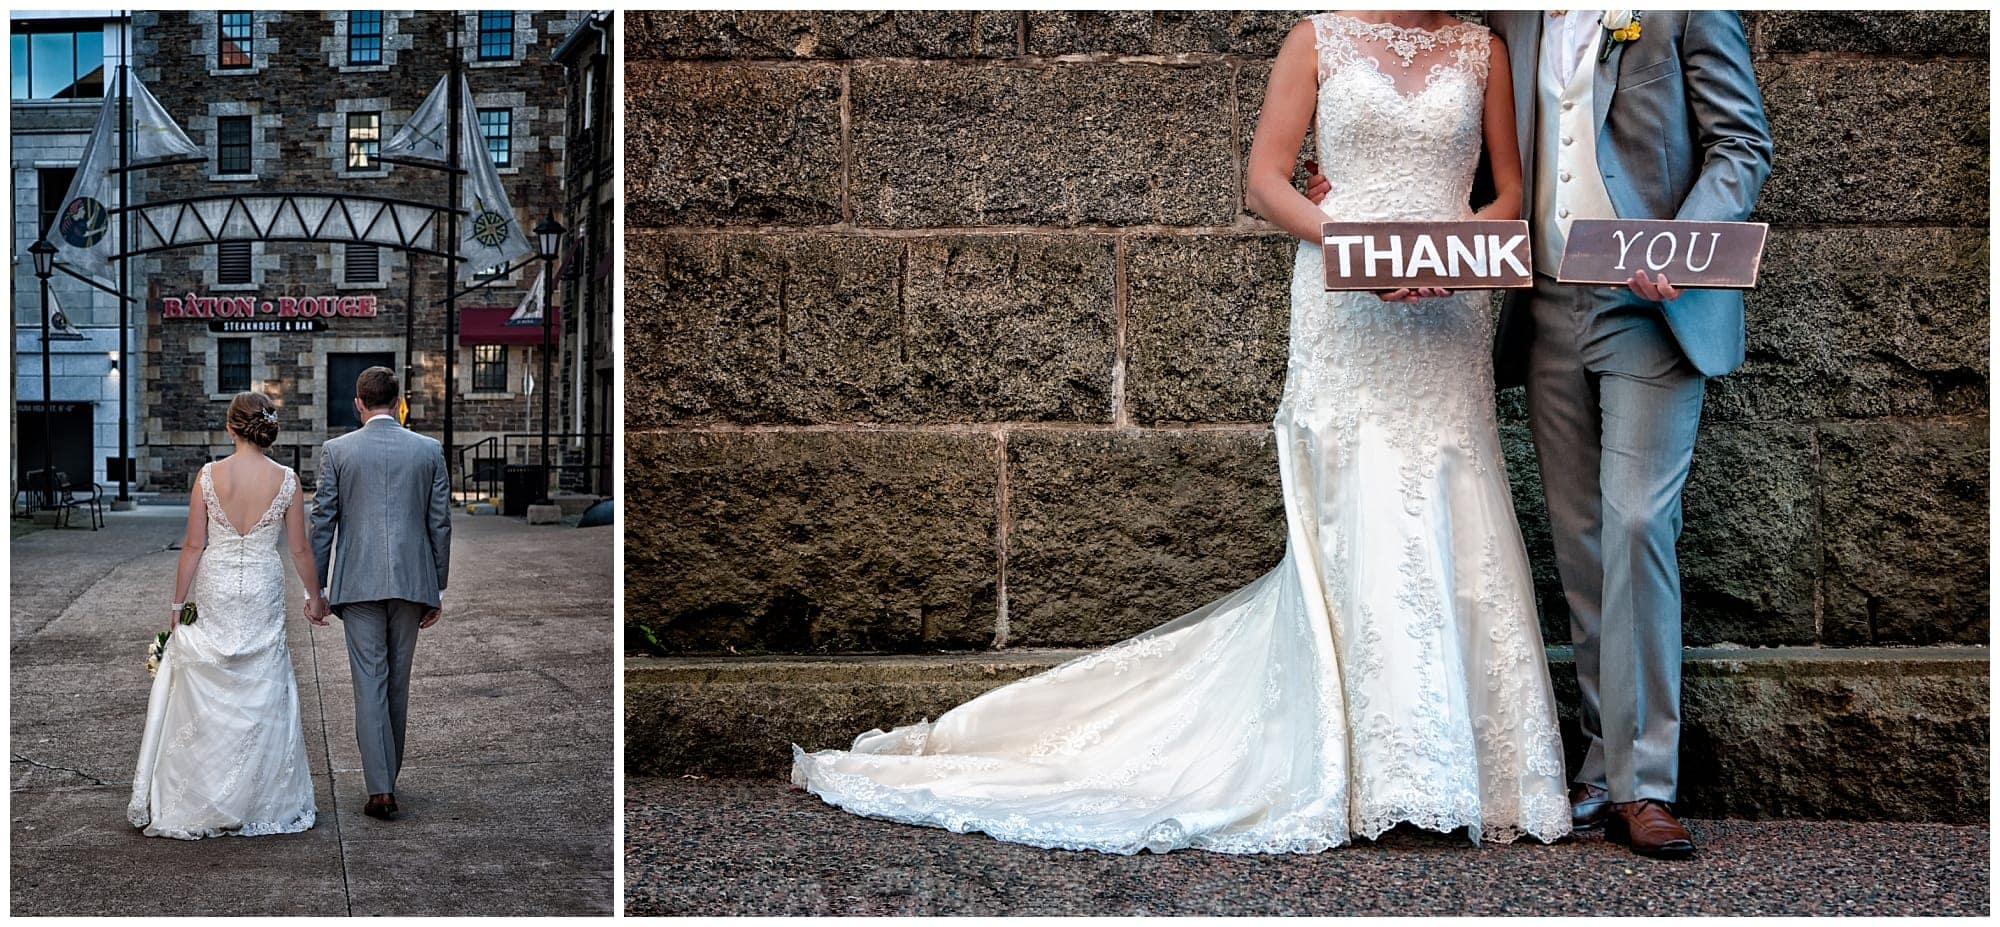 The bride and groom hold thank you wedding signs for their wedding photos and thank you cards in downtown Halifax, NS.